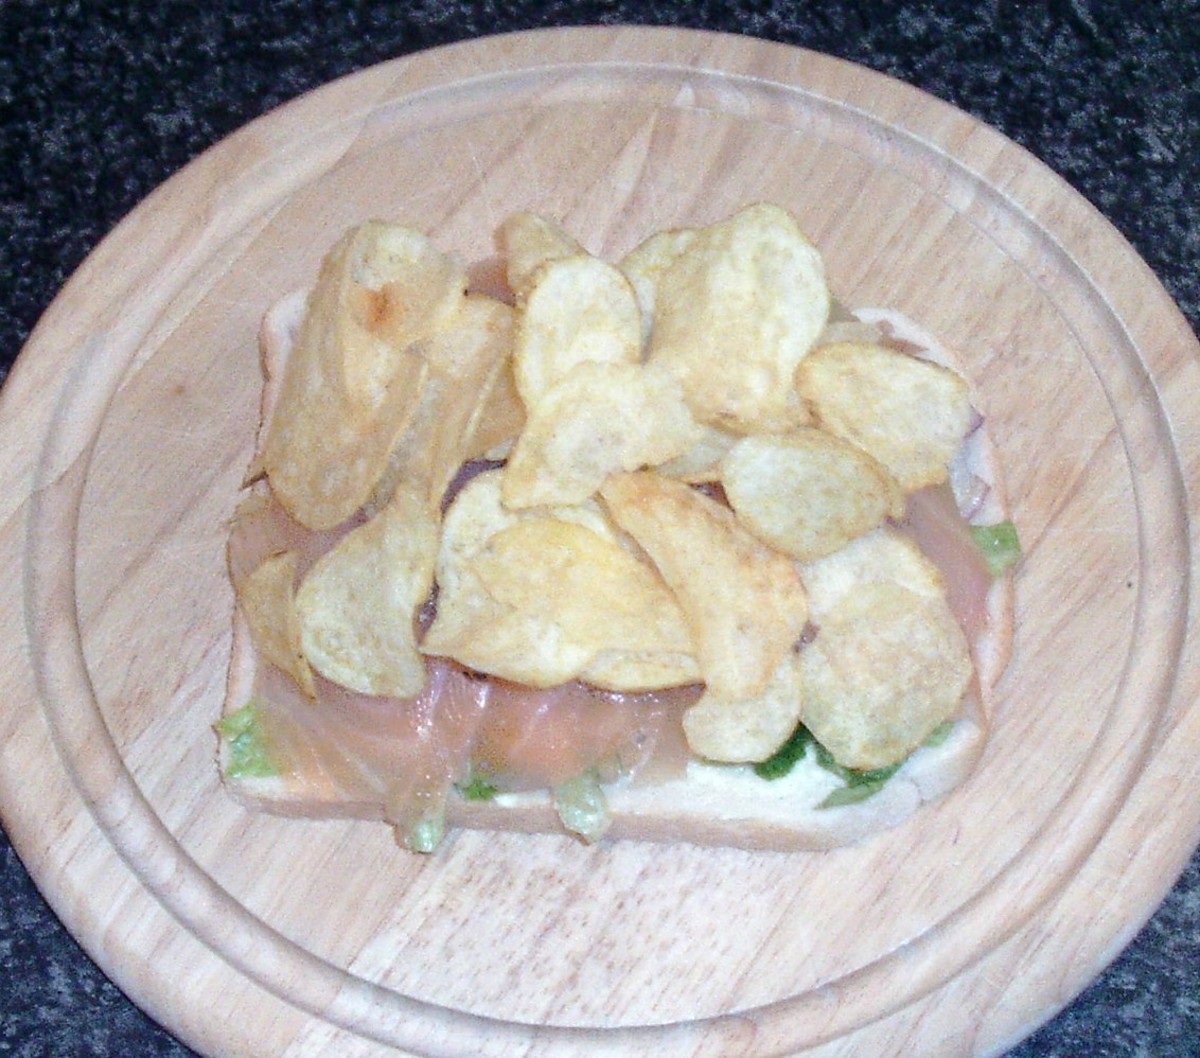 Crisps are arranged on smoked salmon